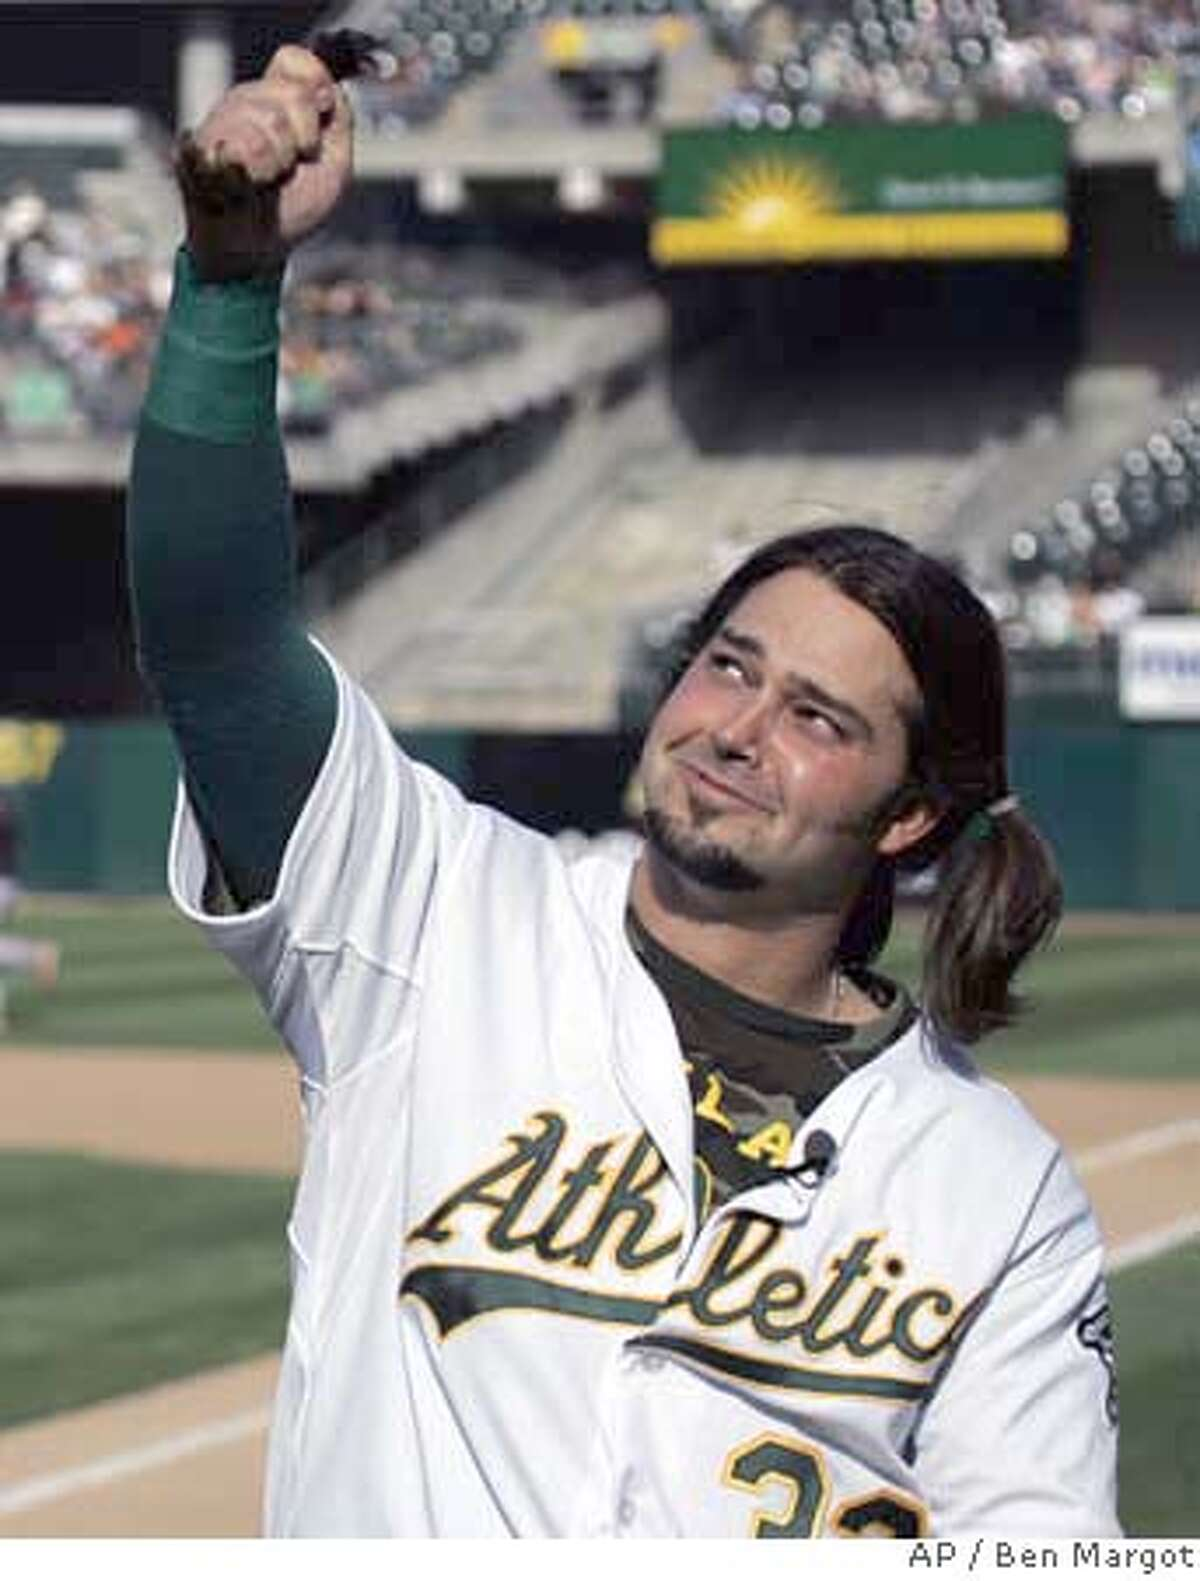 Oakland Athletics center fielder Nick Swisher holds his ponytail of hair cut at home plate by his father, former major league baseball player Steve Swisher, prior to the baseball game with the San Francisco Giants Saturday, May 19, 2007, in Oakland, Calif. Swisher had not cut his hair since the beginning of spring training, with the intention of donating his locks for a wig to be made for a woman with cancer, in honor of his grandmother who died of the illness. (AP Photo/Ben Margot)